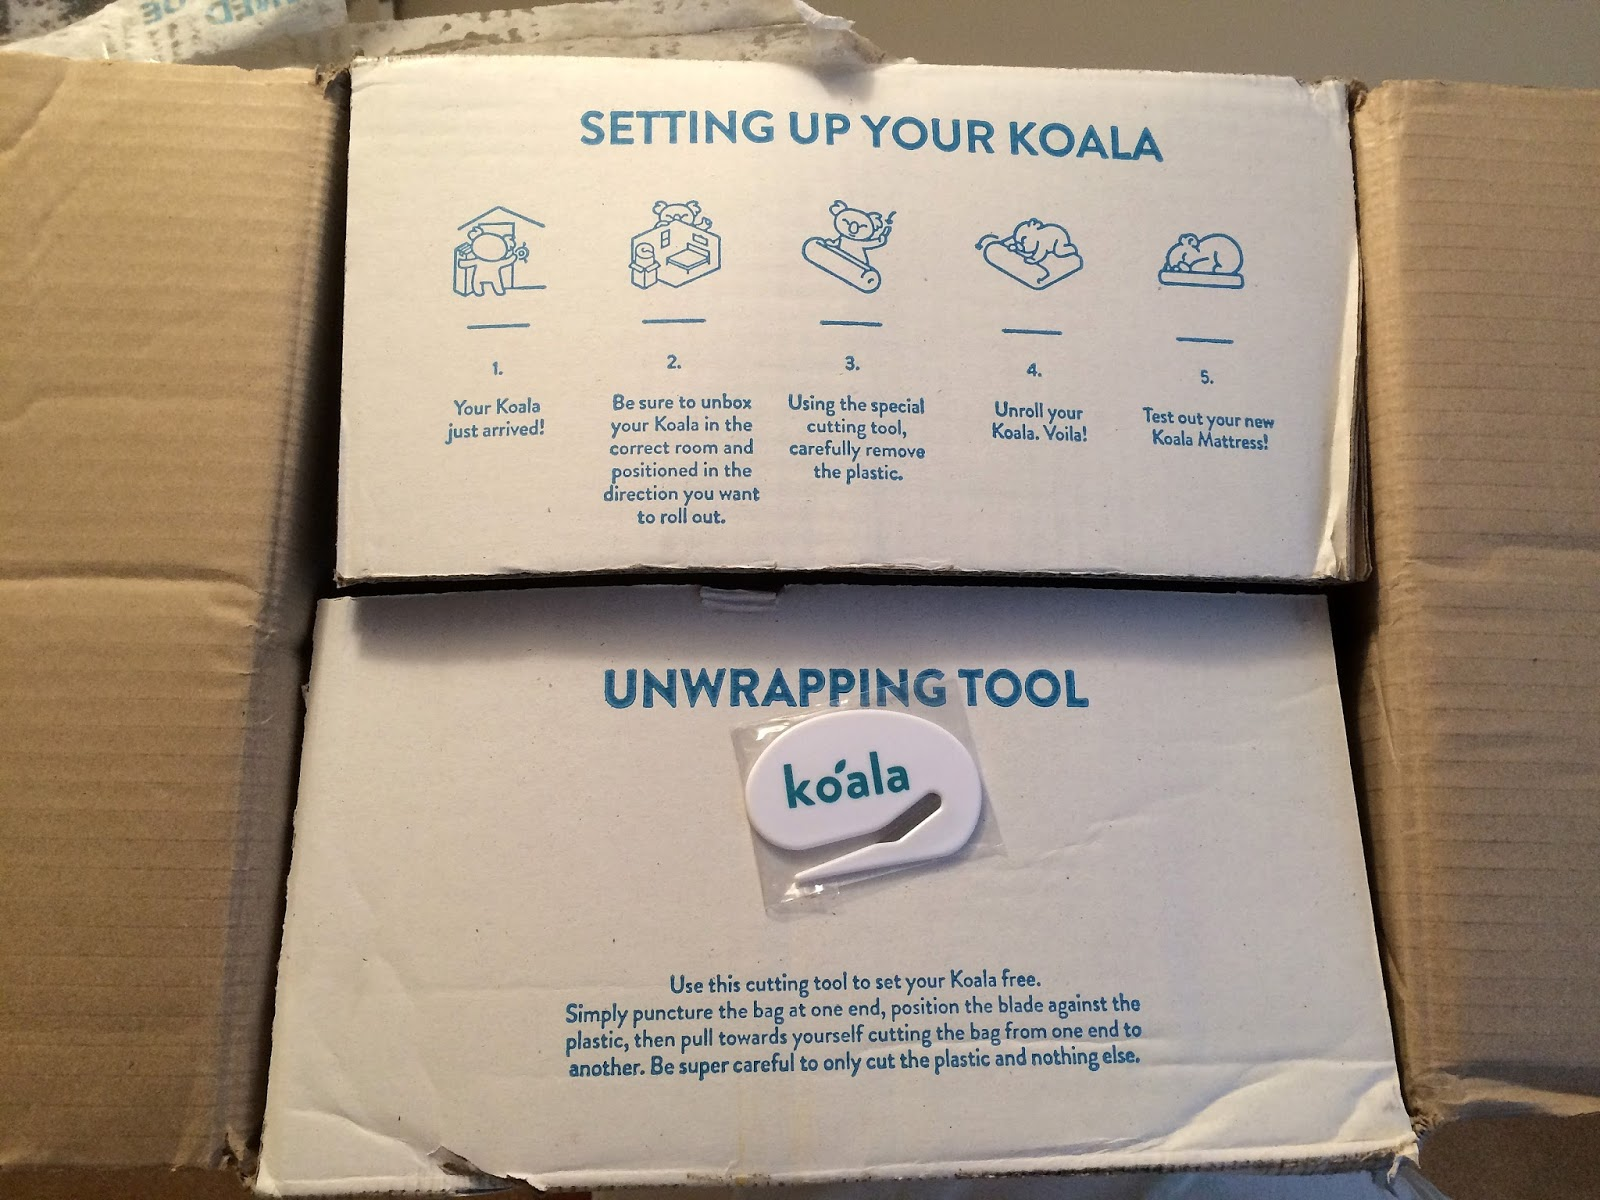 Instructions how to set up Koala Mattress